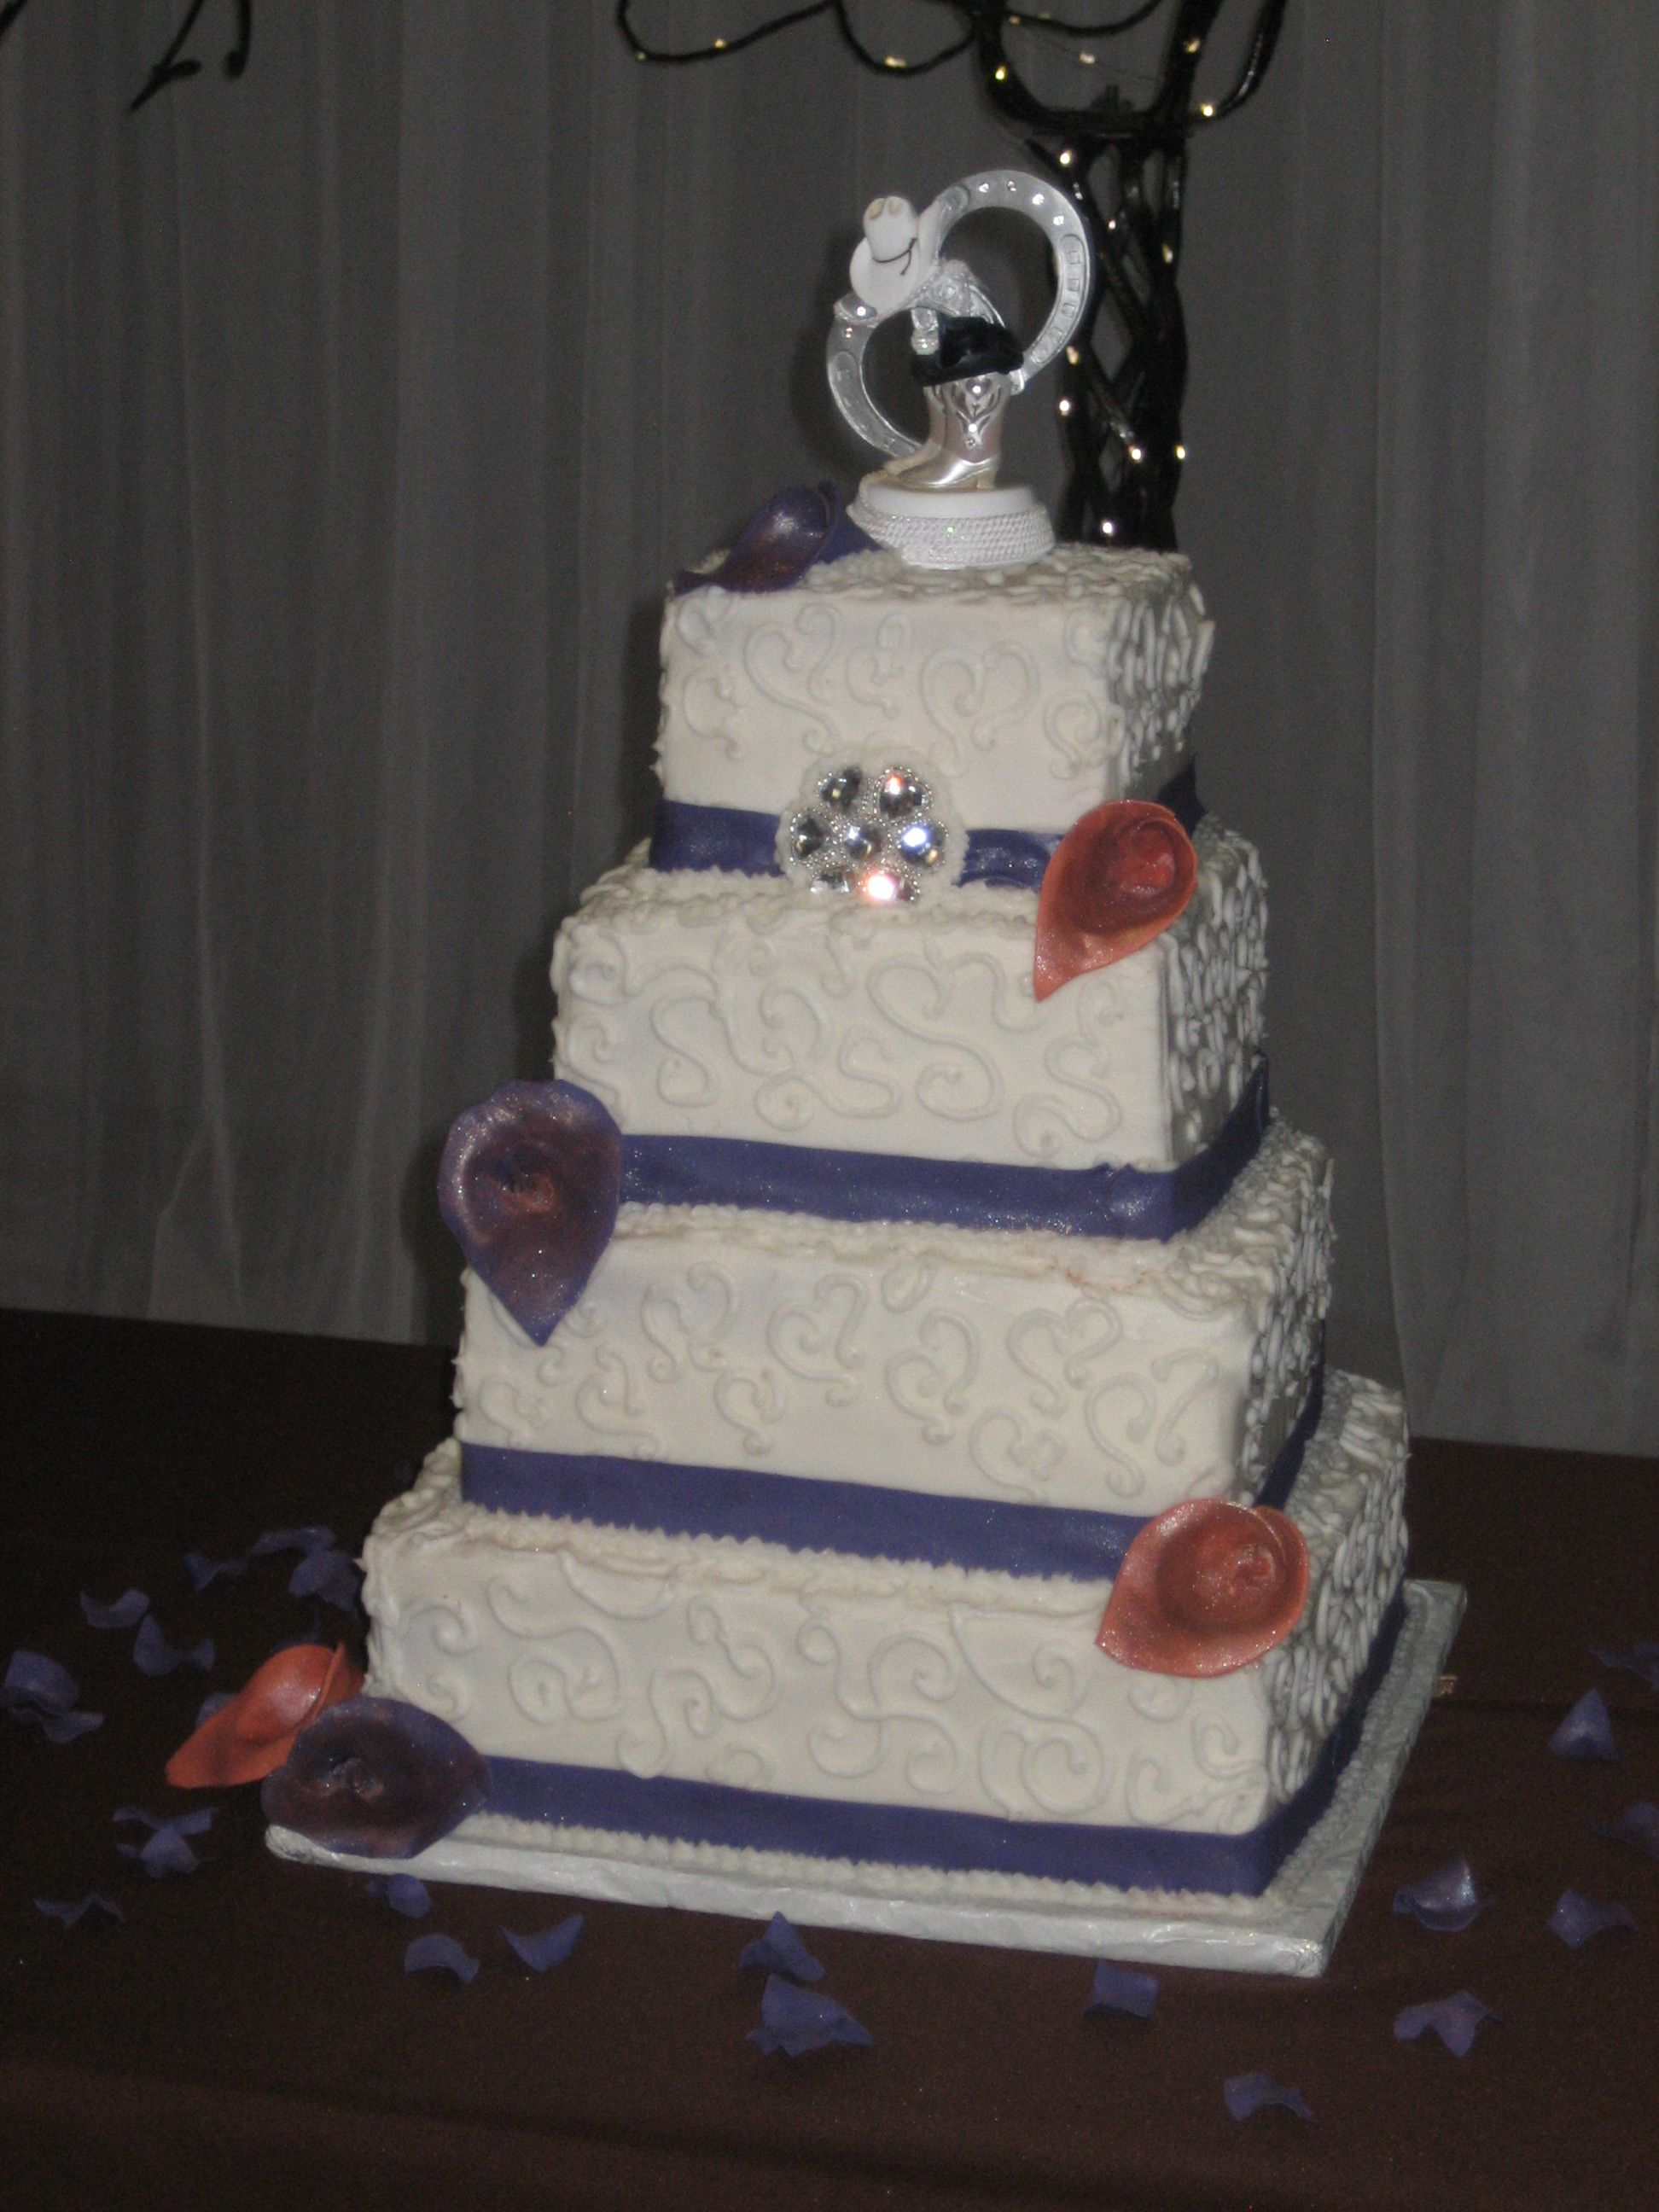 Country-themed cake with cowboy hats, boots and wagon